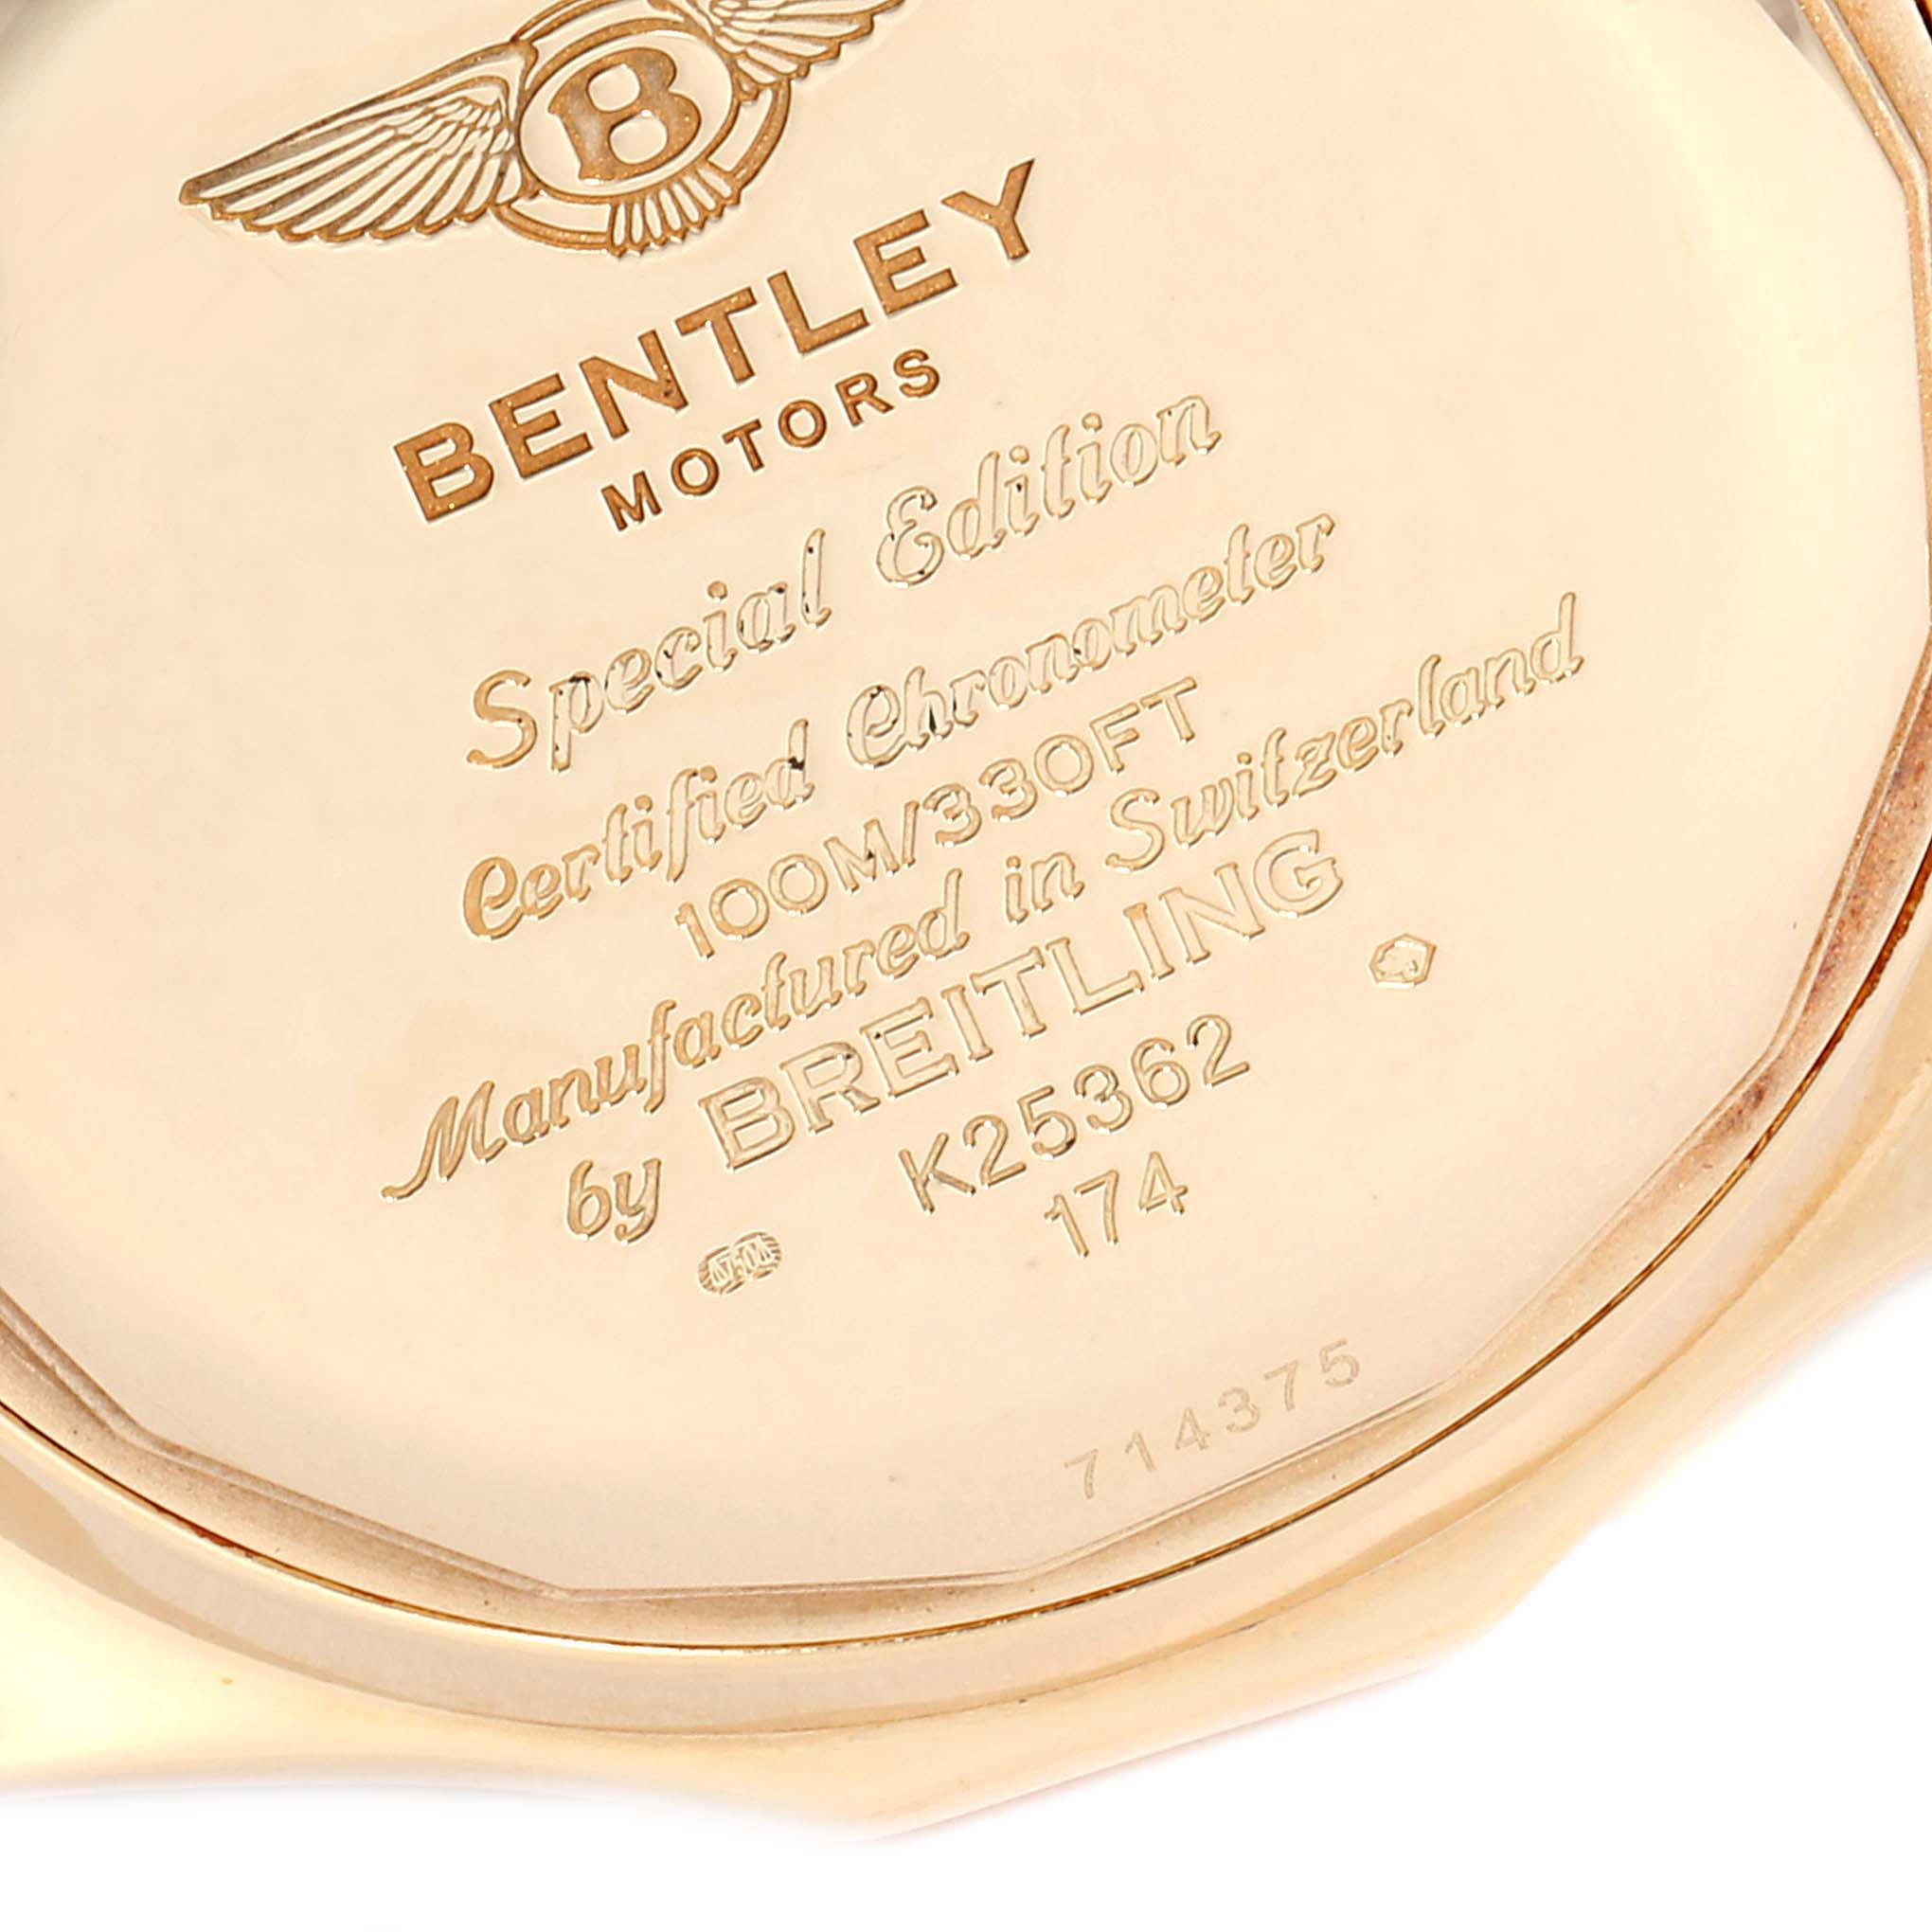 Breitling Bentley Yellow Gold Black Dial Chronograph Watch K25362 SwissWatchExpo